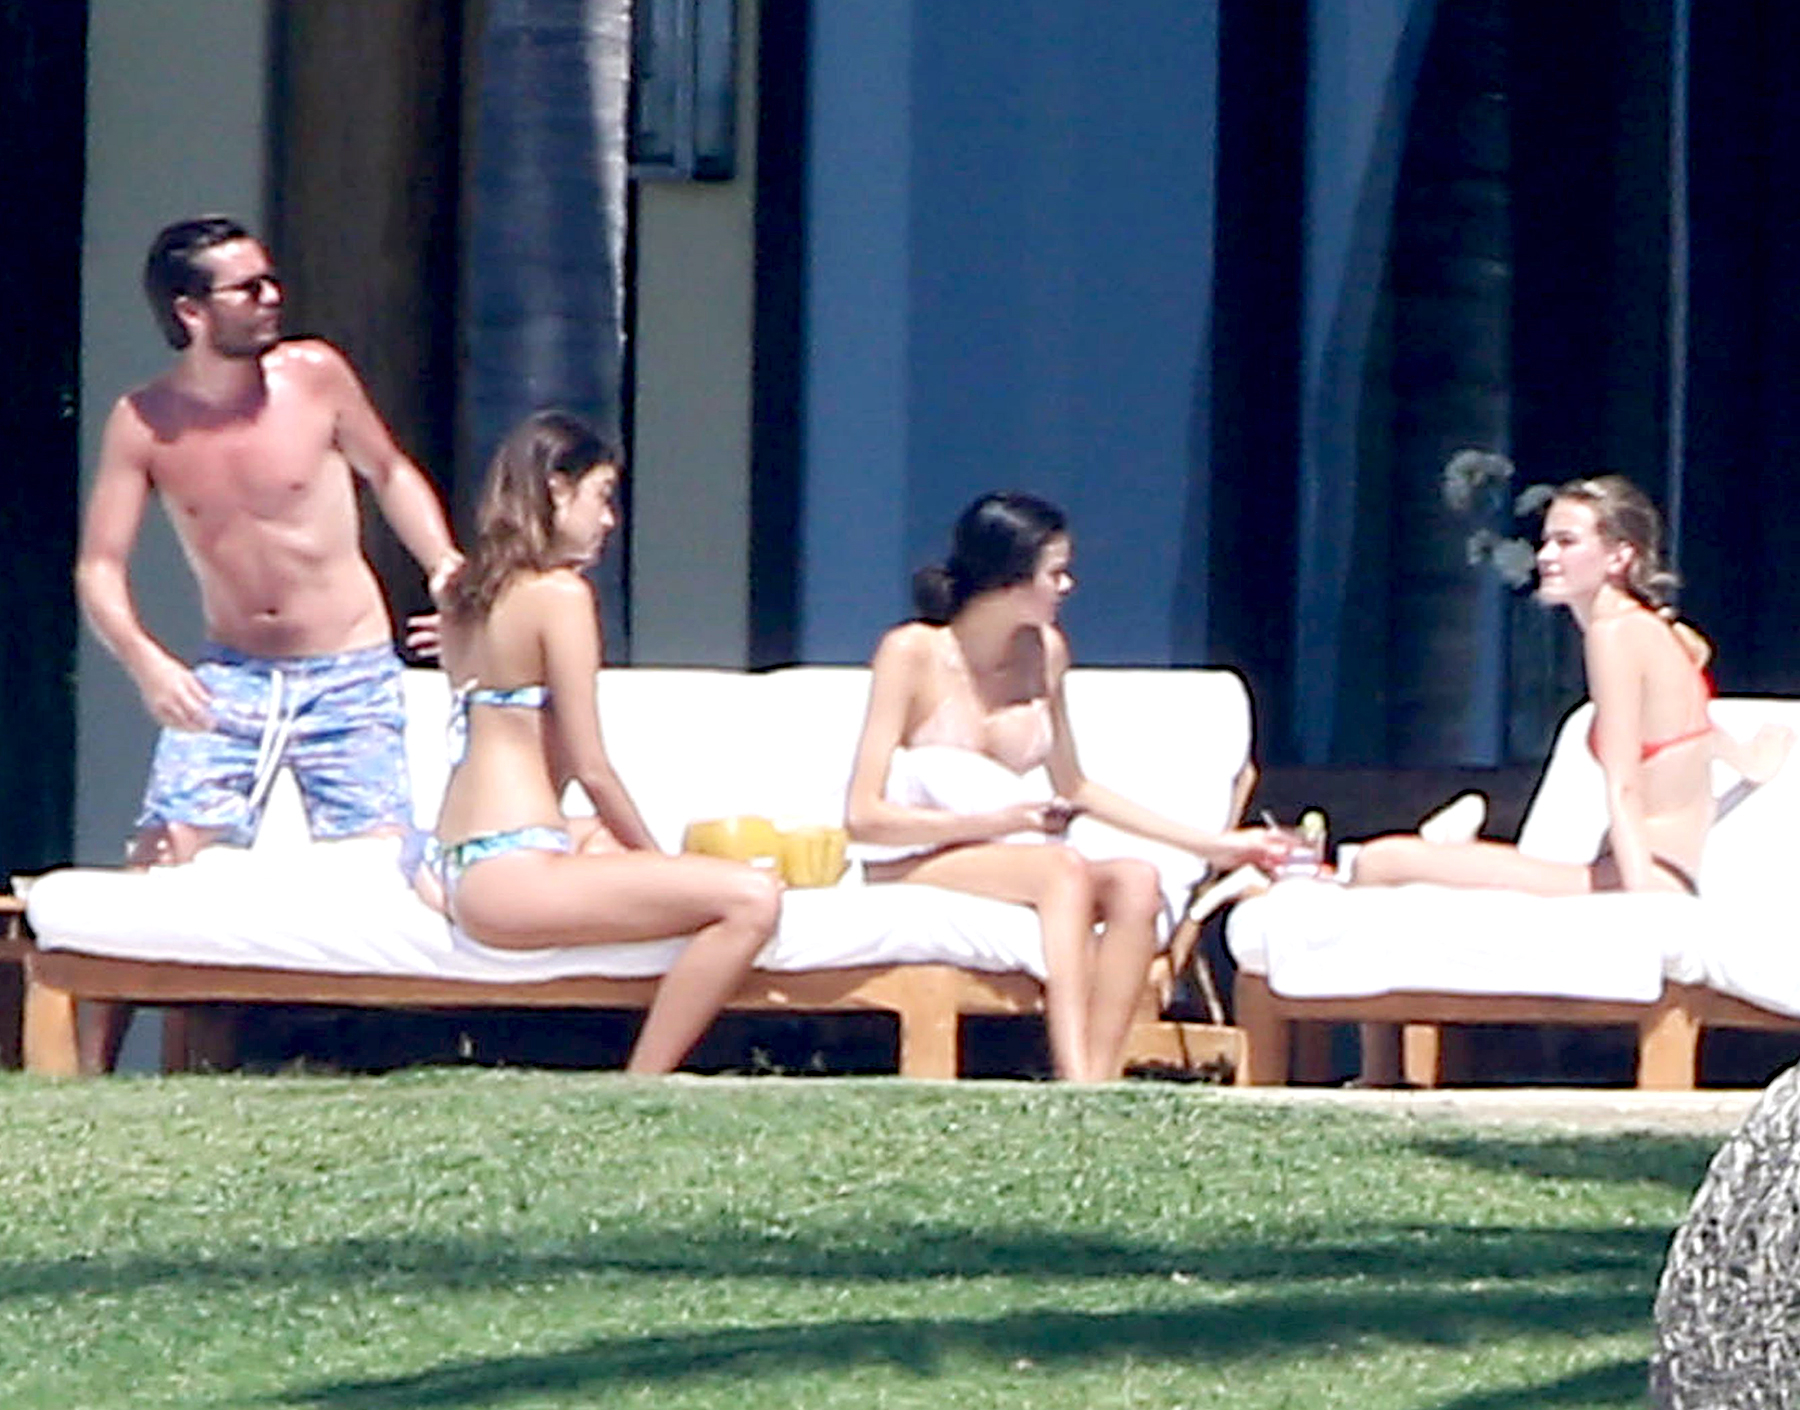 Scott Disick Is Partying in Mexico (Again) While Kourtney Kardashian Cares for Their Kids in L.A.: All the Details